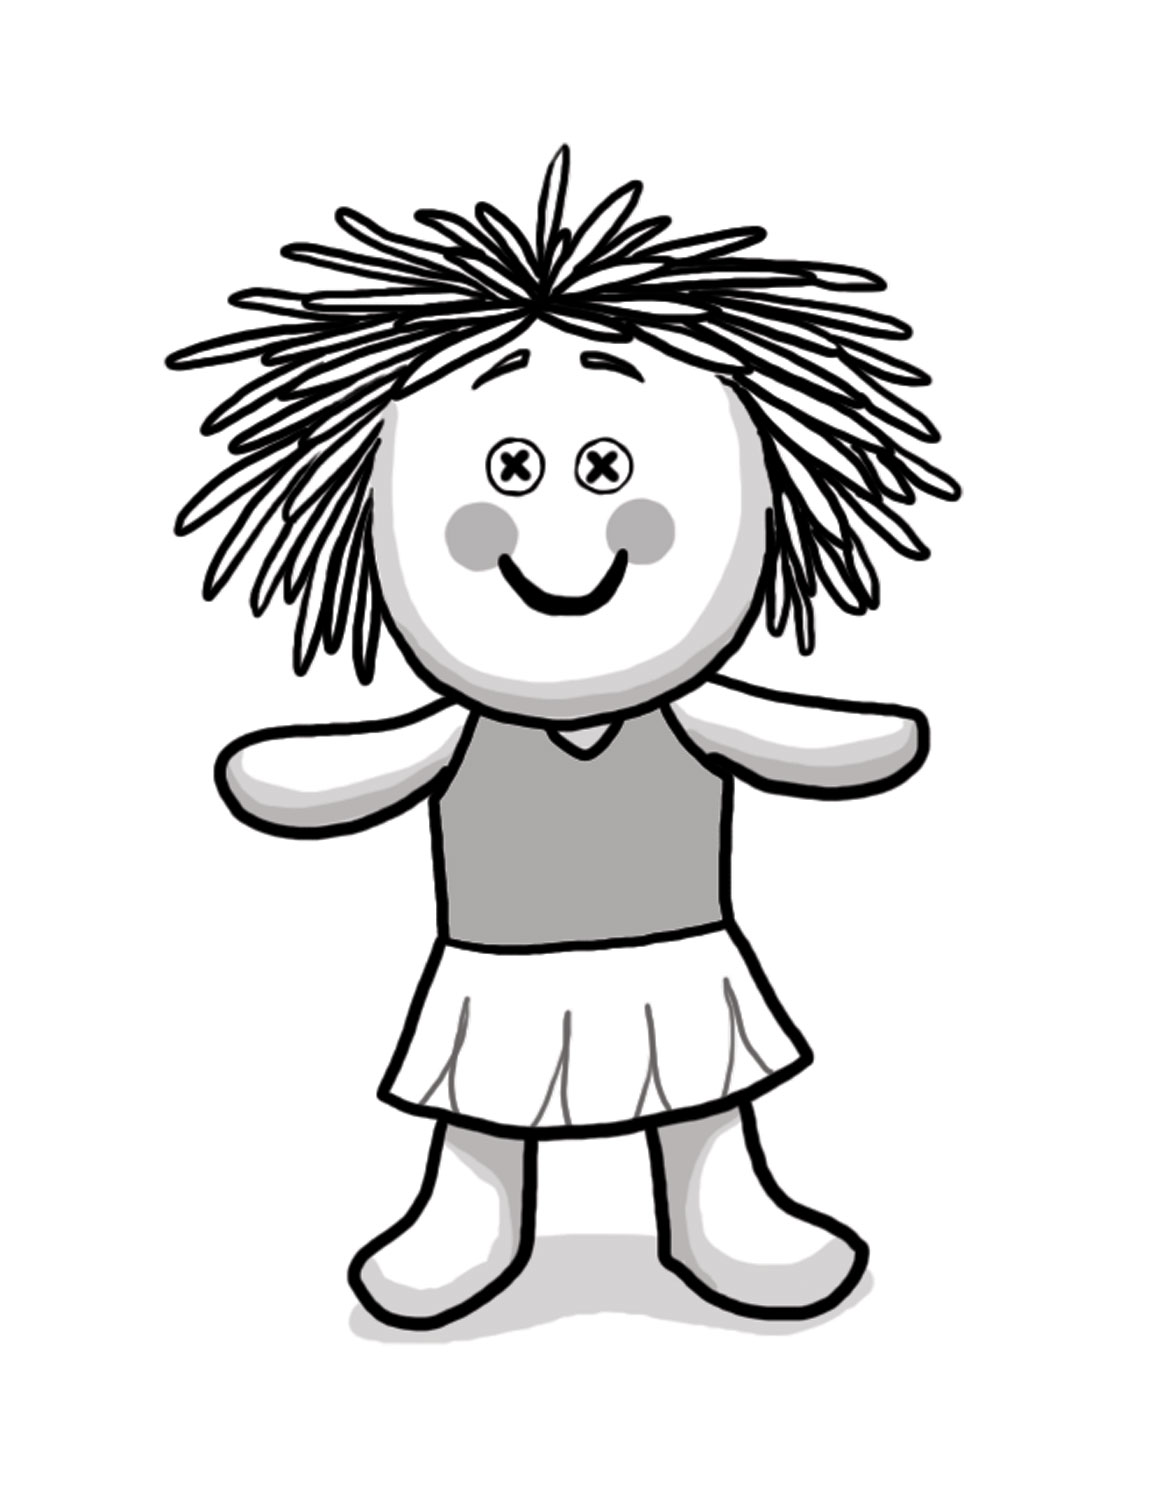 Doll clipart black and white 7 » Clipart Station.